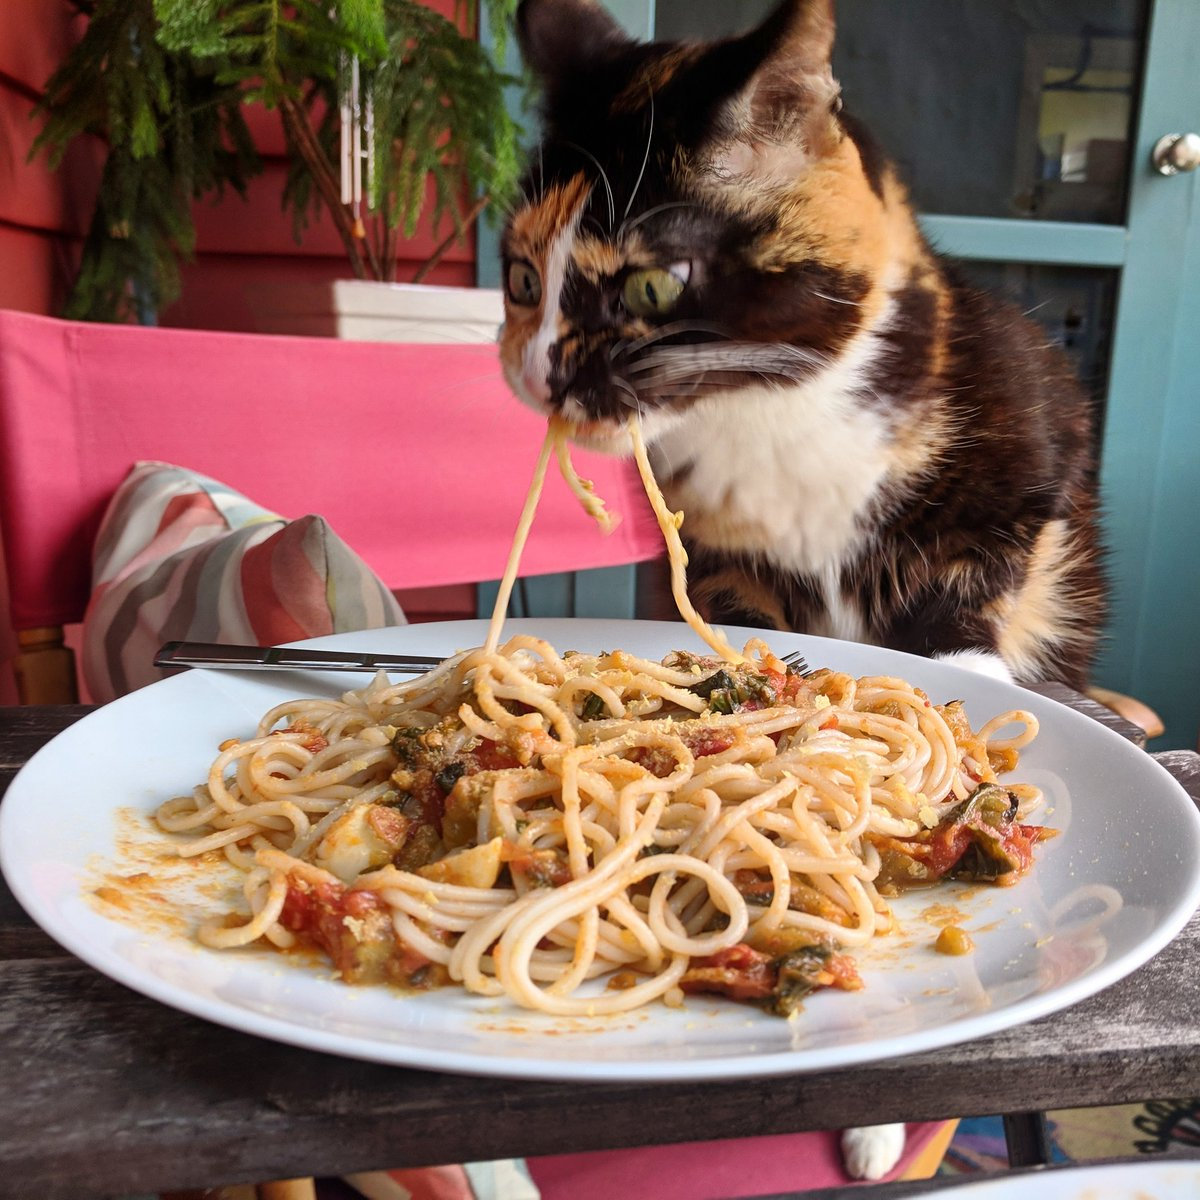 a calico cat furiously stealing a strand of spaghetti from a dinner plate